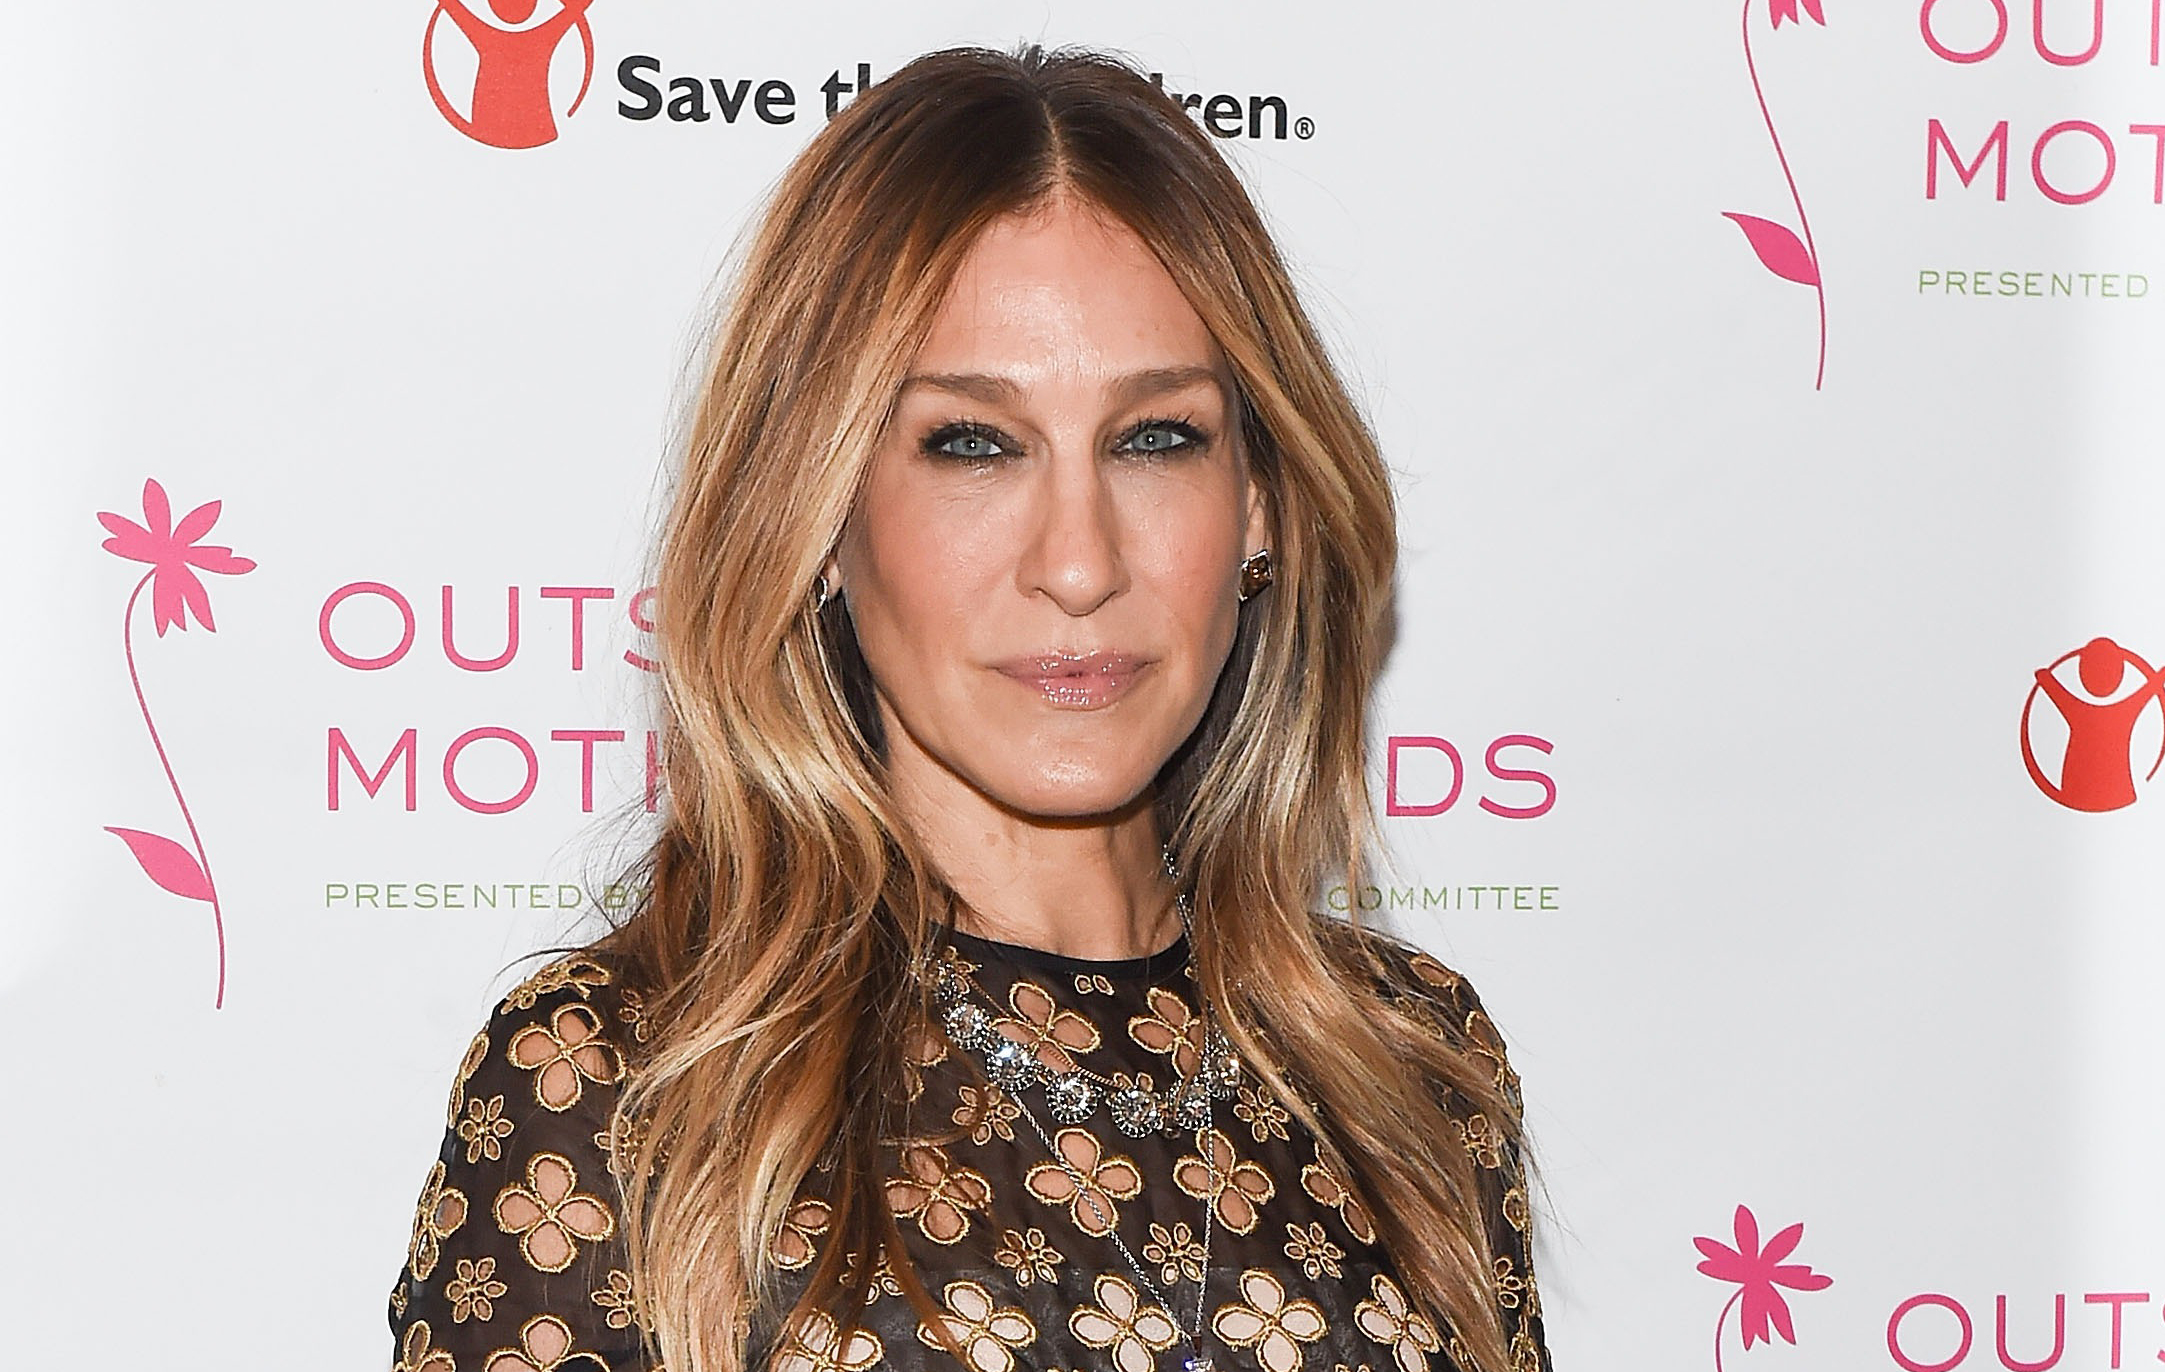 Sarah Jessica Parker looks like a literal angel from heaven in this flowy white dress